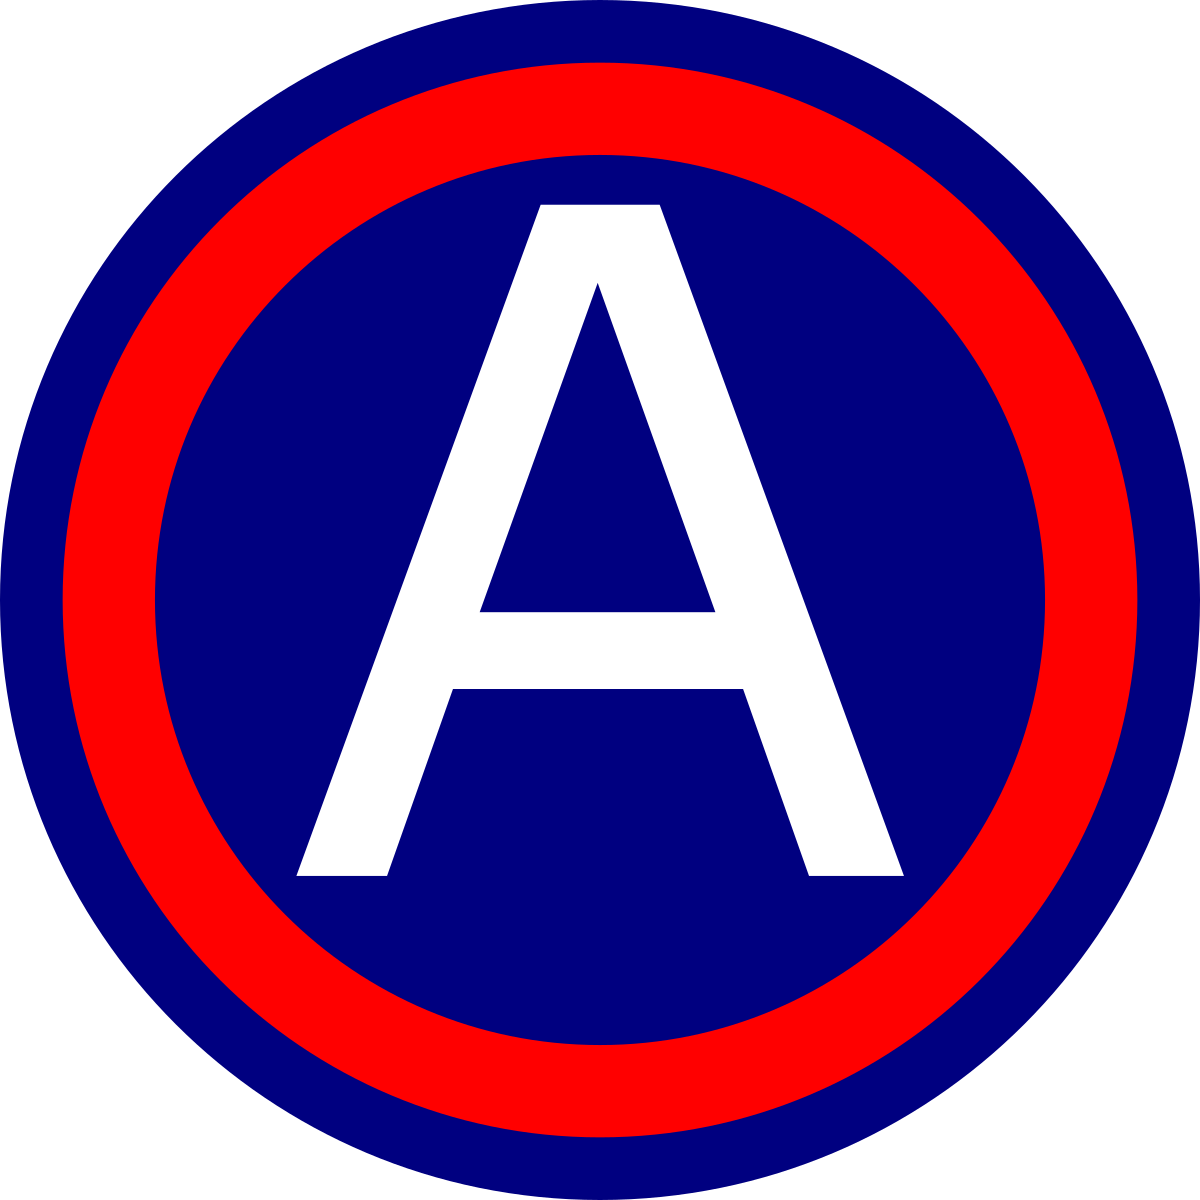 Military svg sign. United states army central